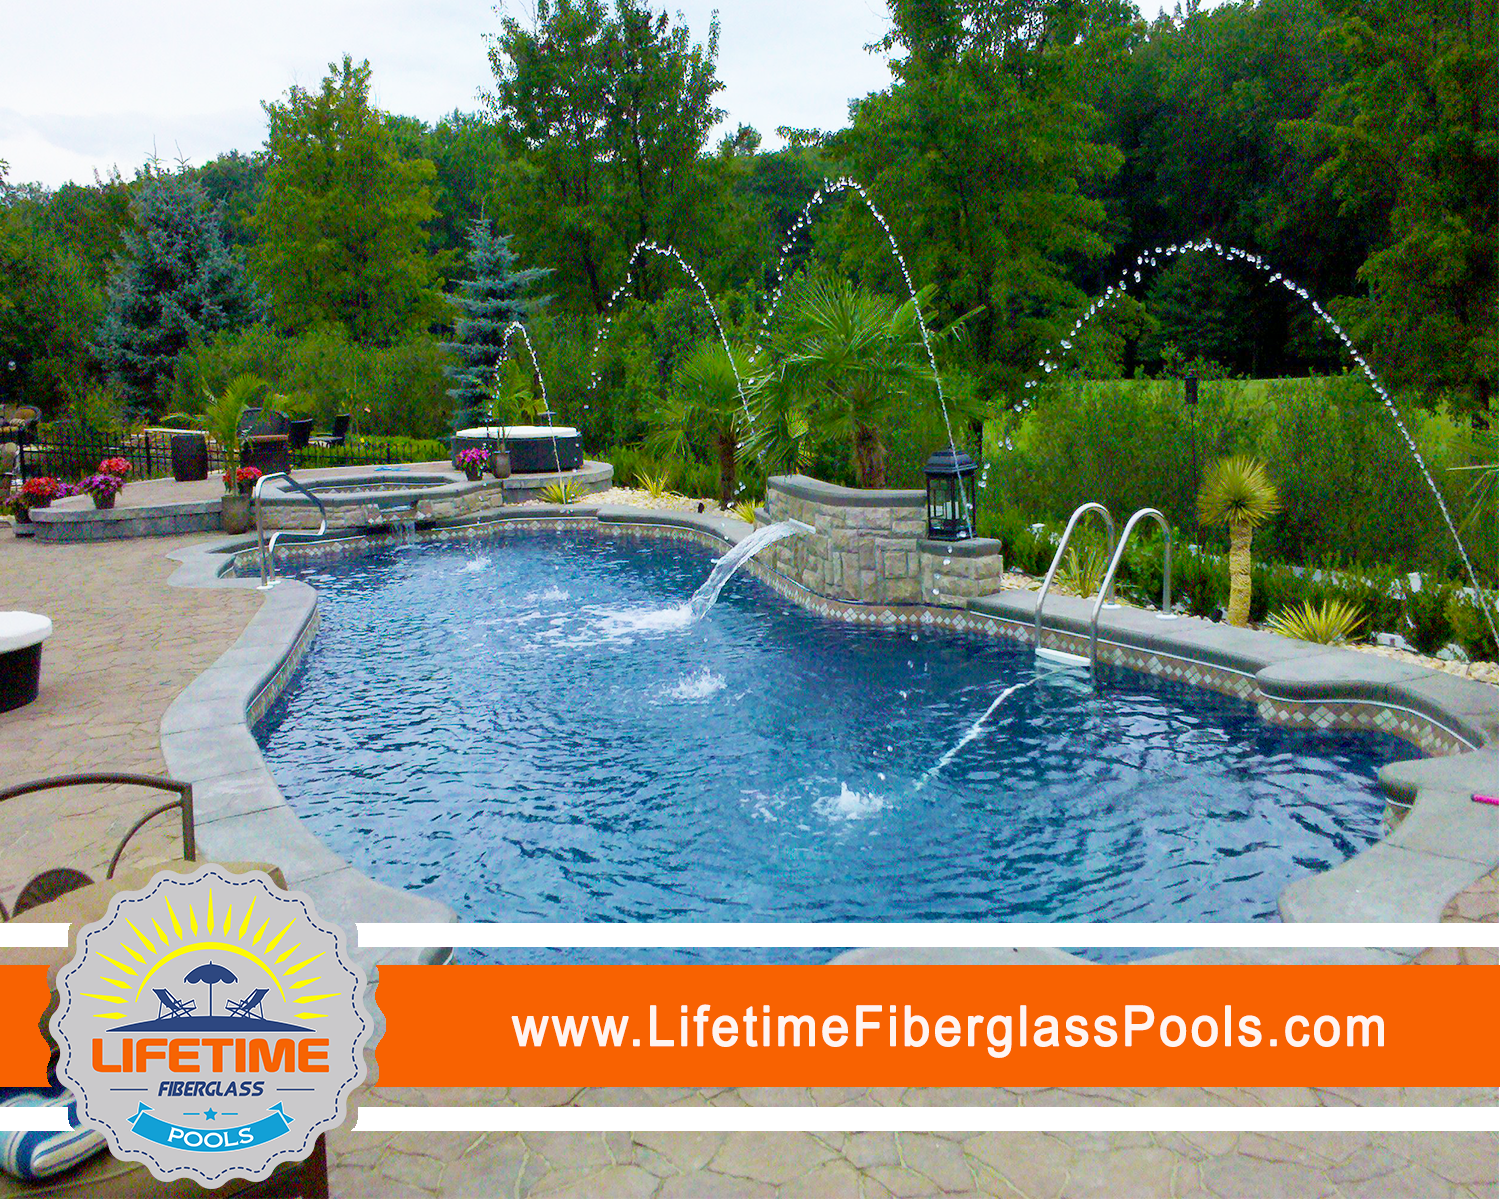 Lifetime Fibergl Pools Inground Swimming Spas Tanning Ledges With A Warranty